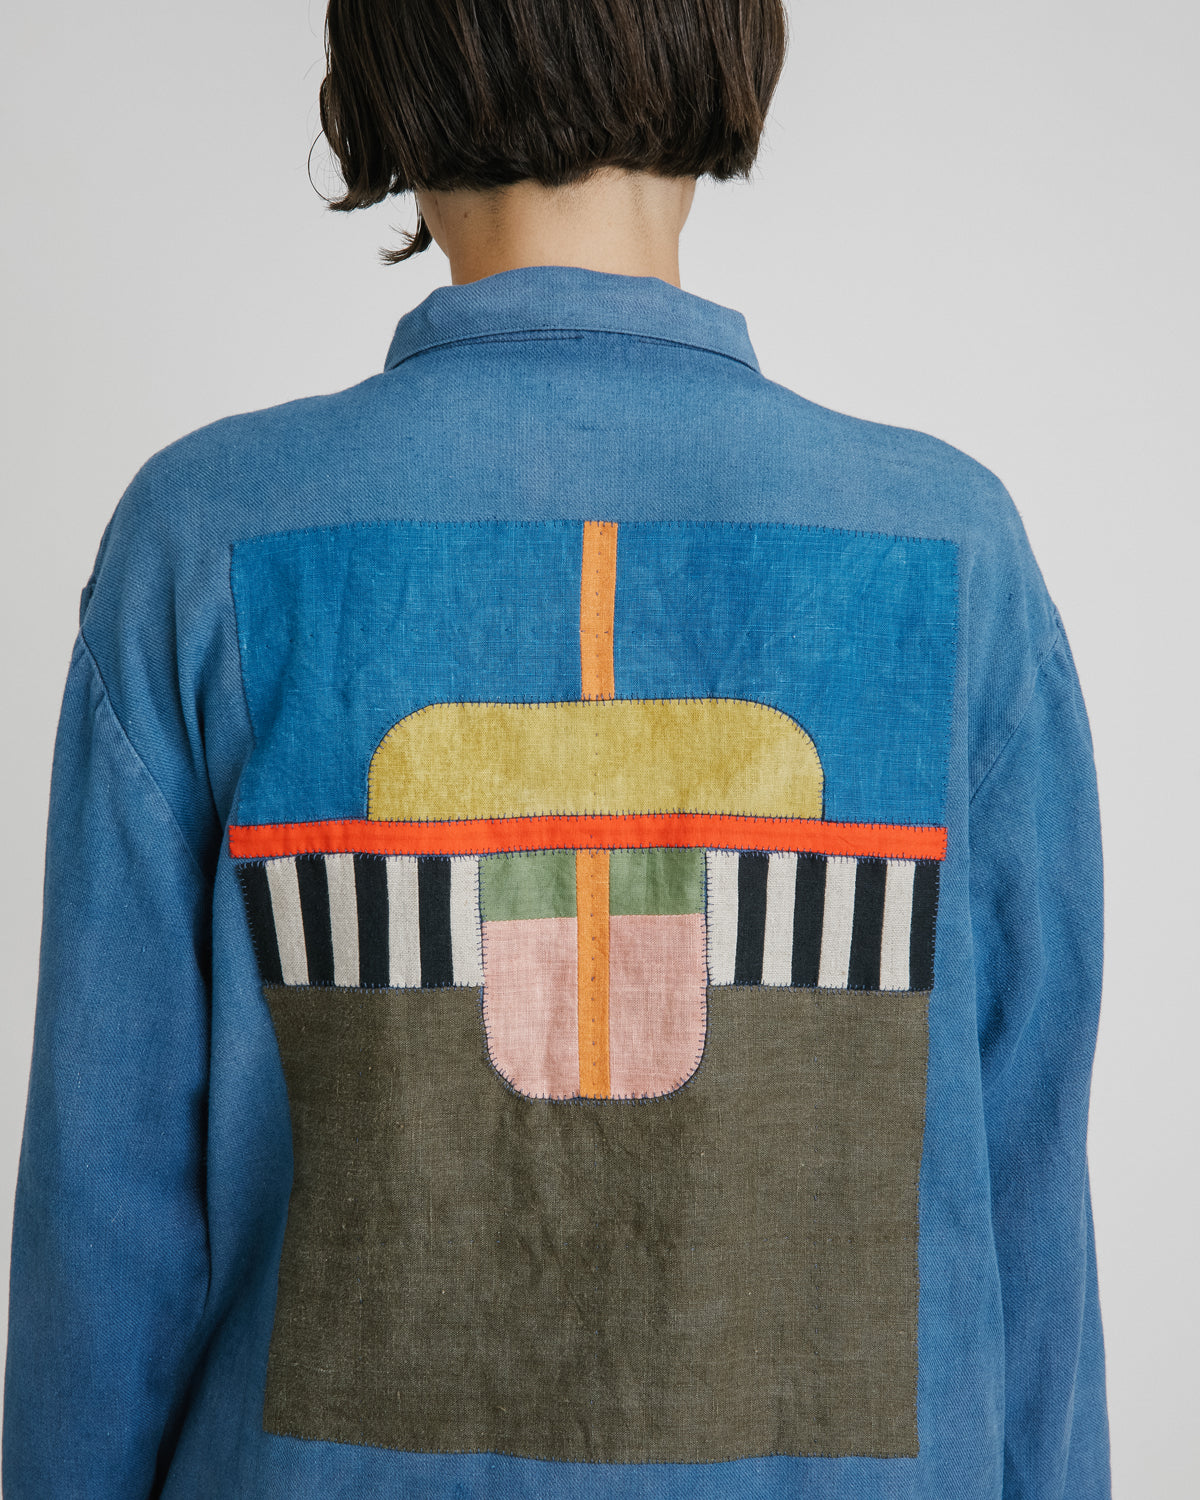 SMOCK x Adam Pogue Vintage Jacket #1